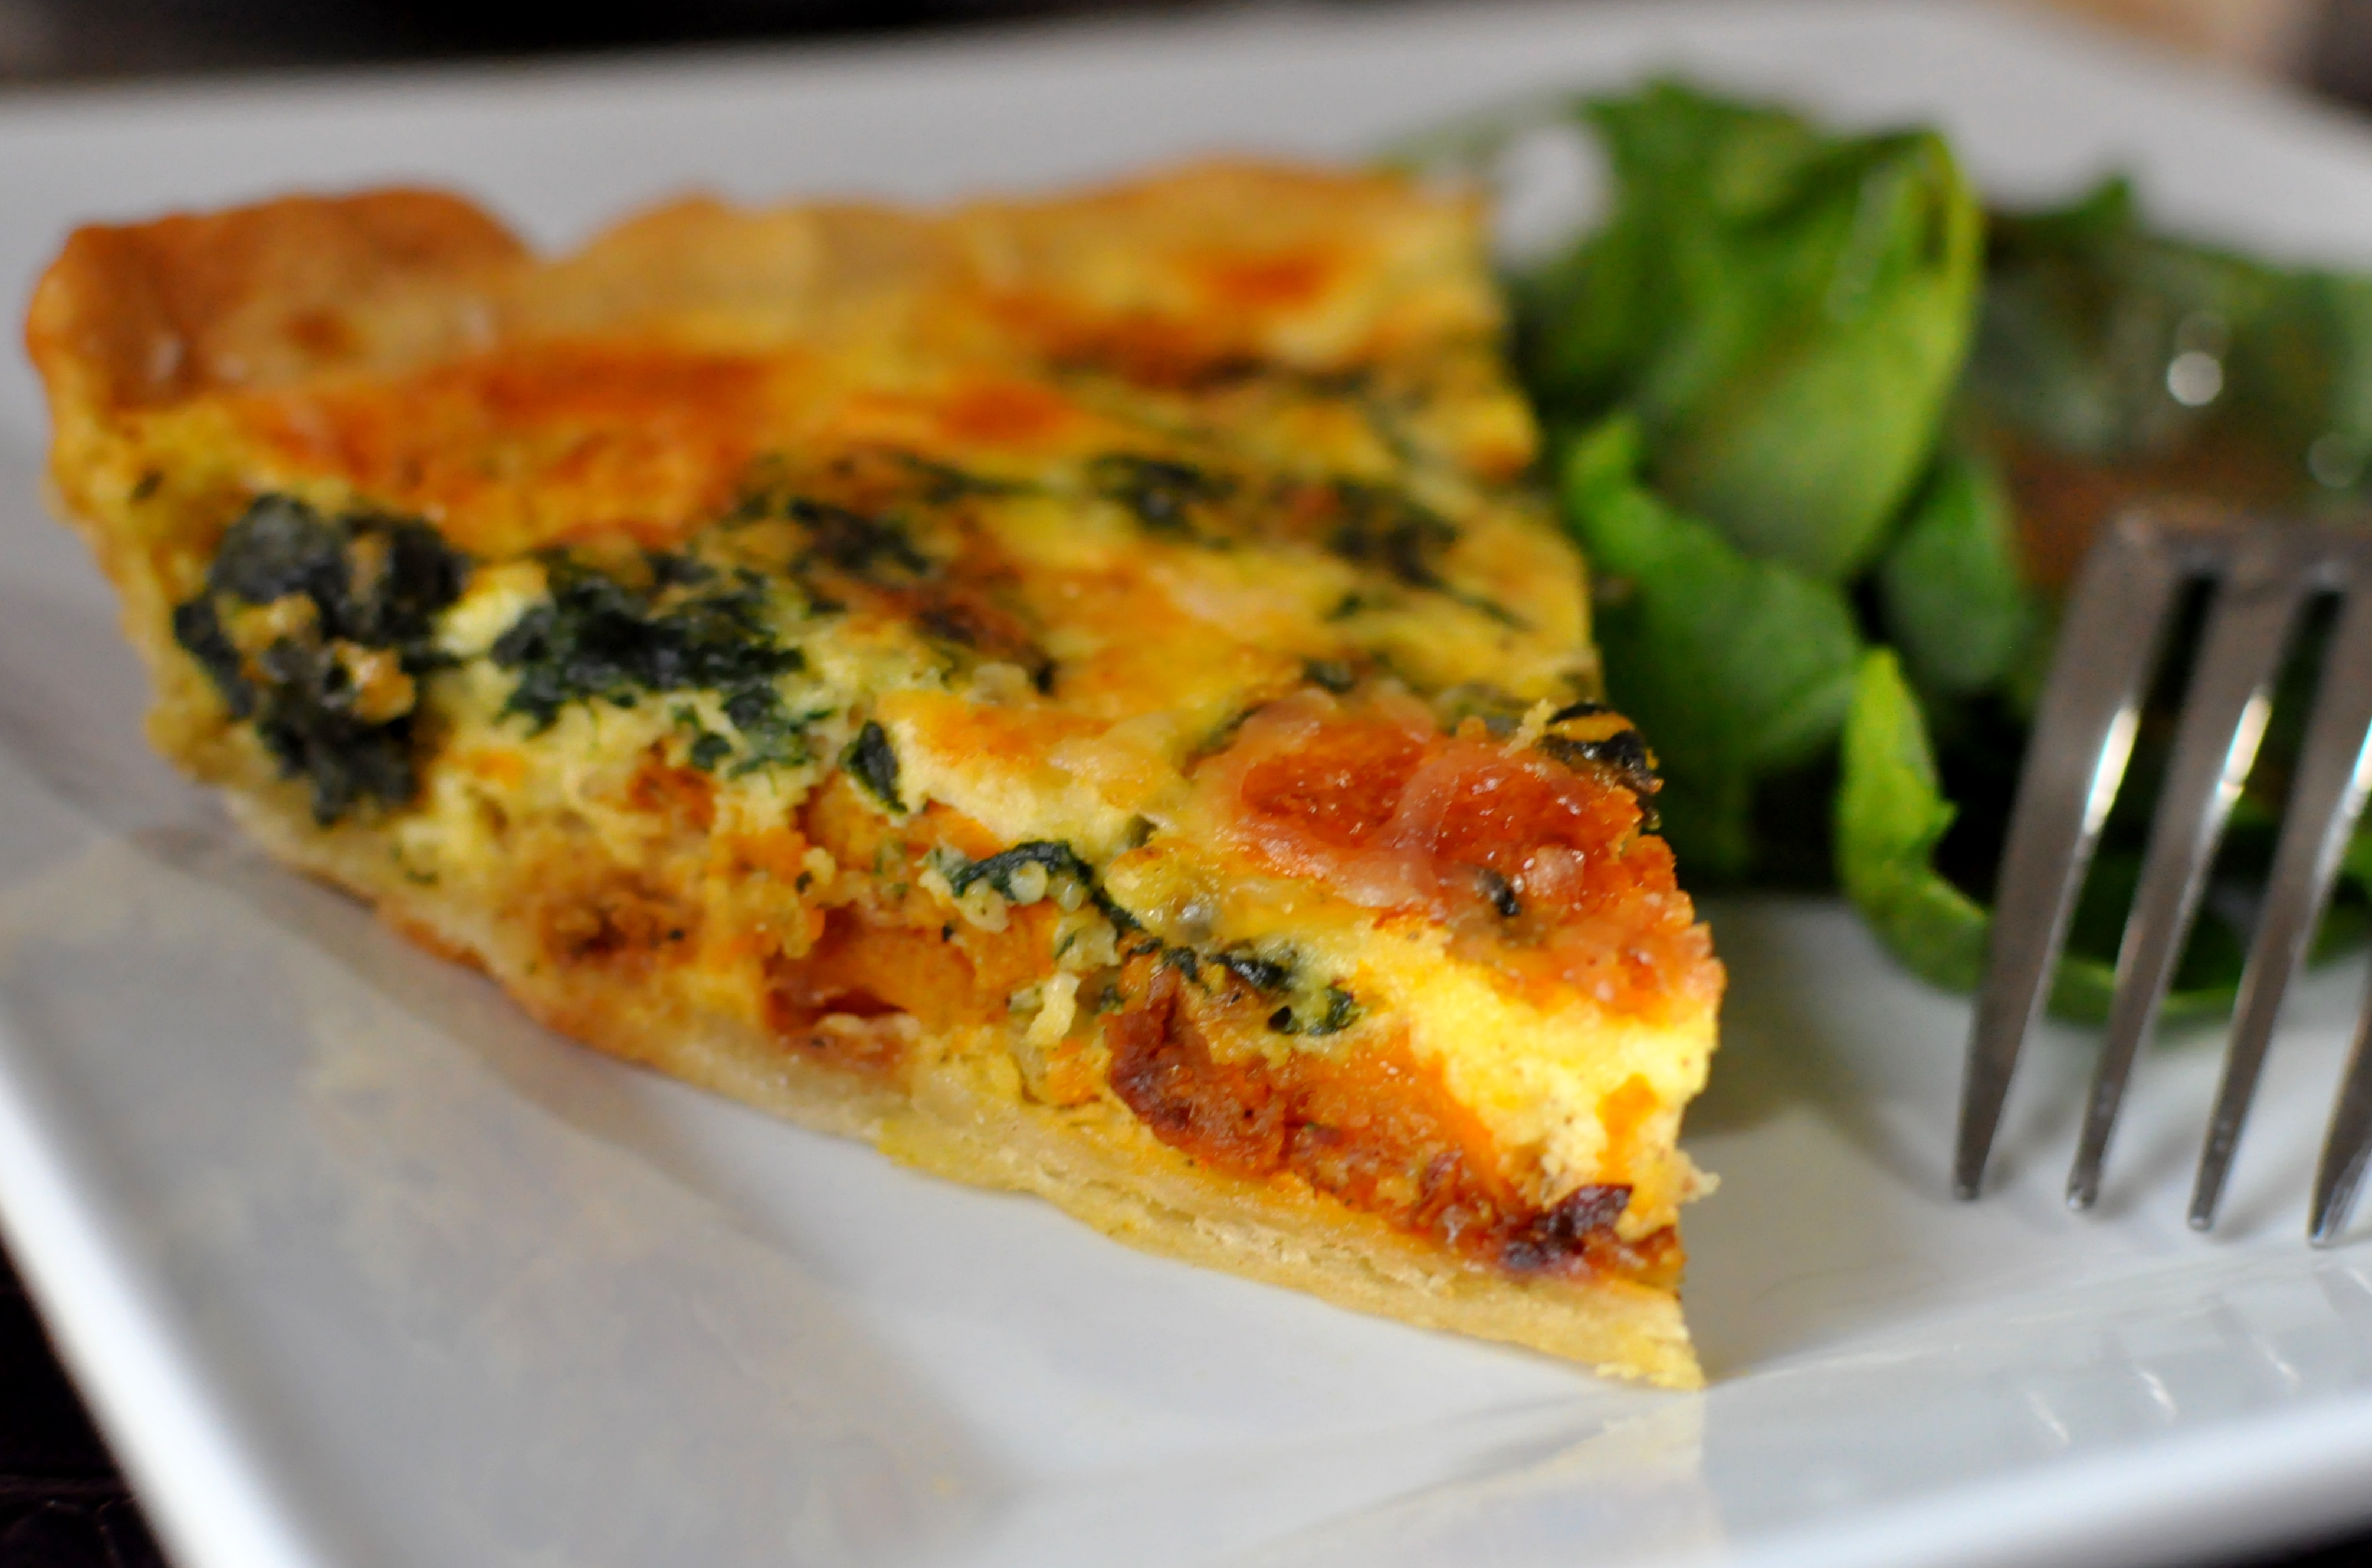 Roasted Butternut Squash and Spinach Quiche Eat This!